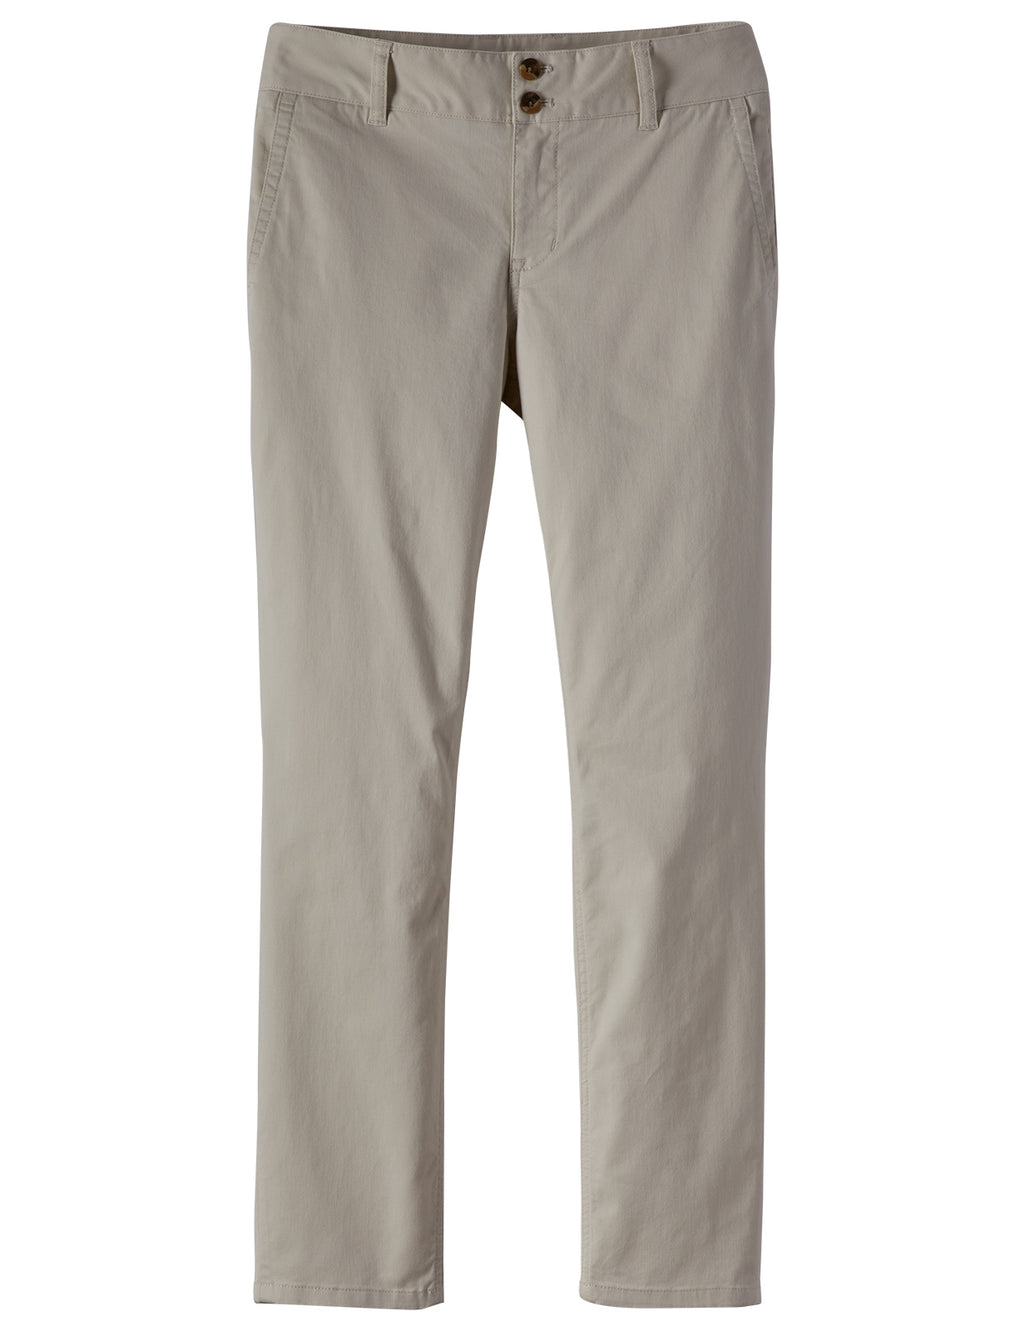 Women's Sadie Skinny Chino Pants | Mountain Khakis